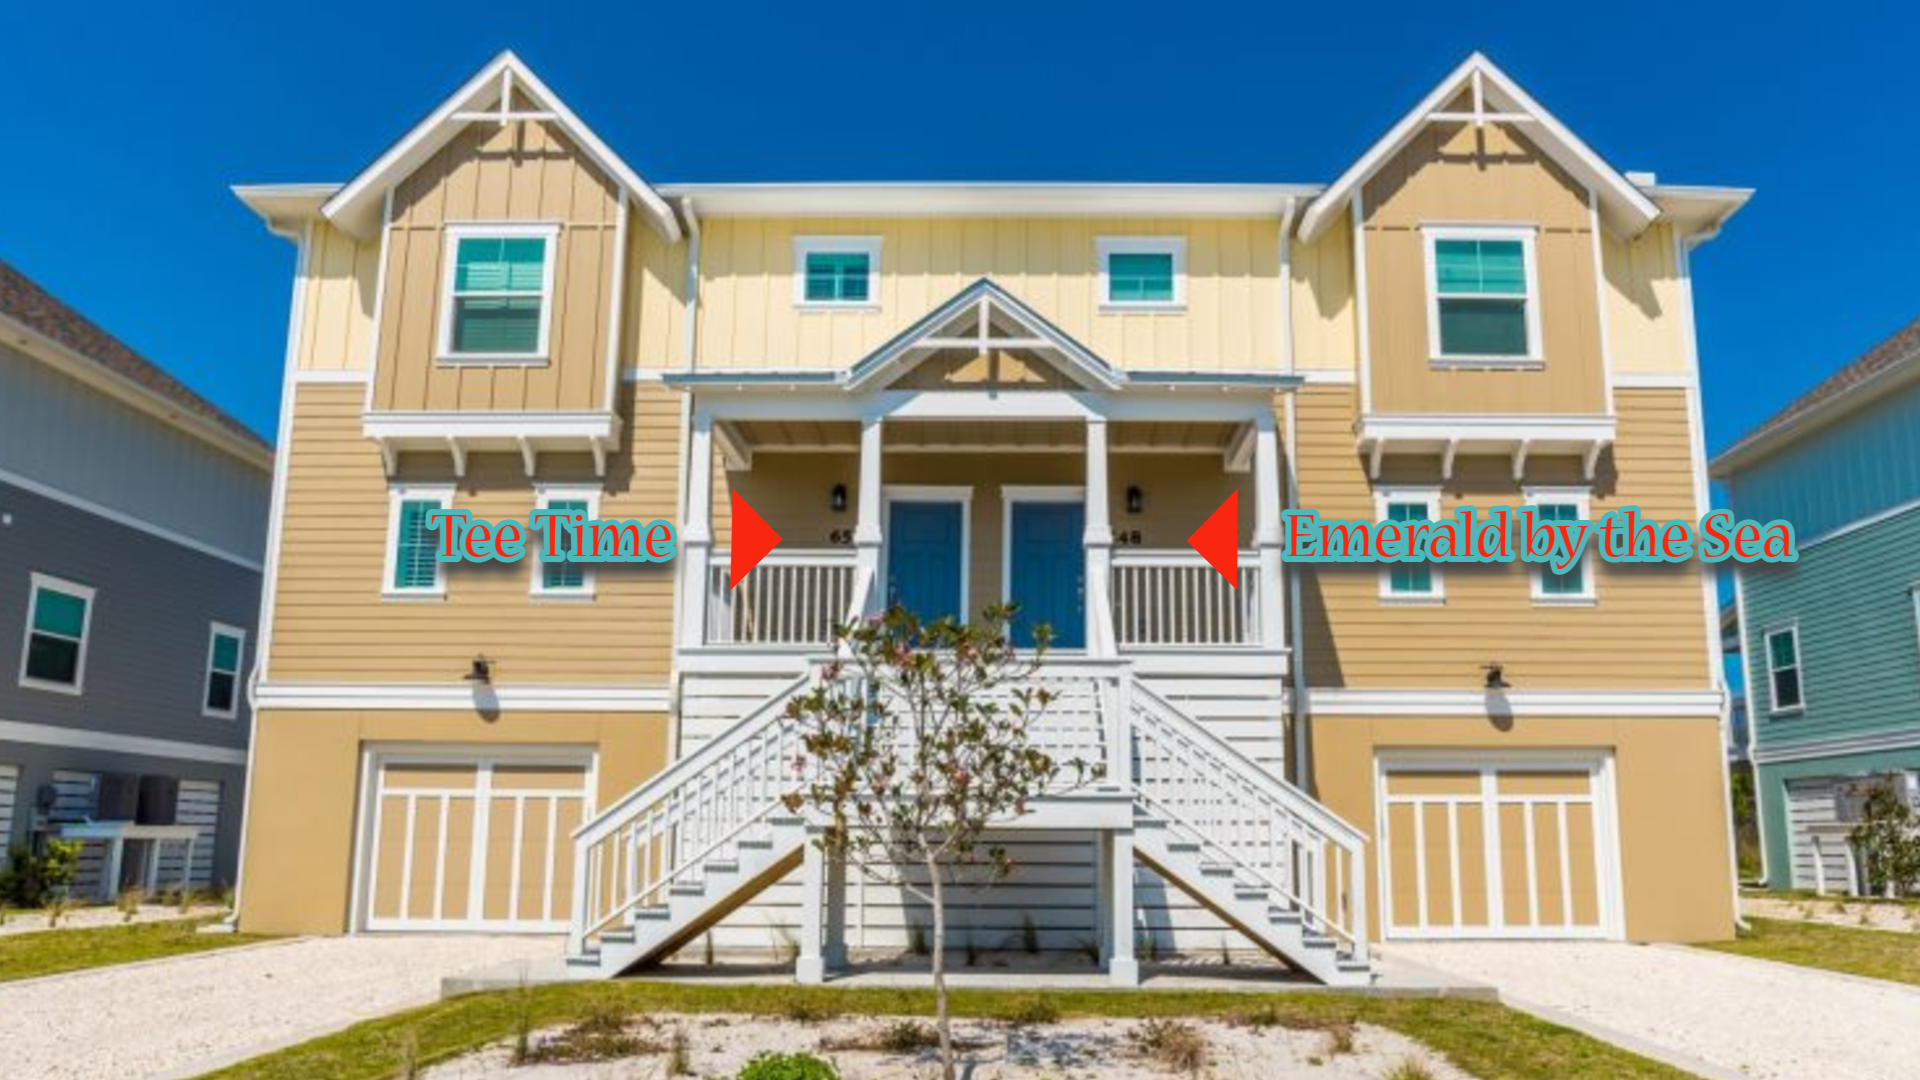 Tee Time & Emerald by the Sea Perdido Key Vacation Rentals